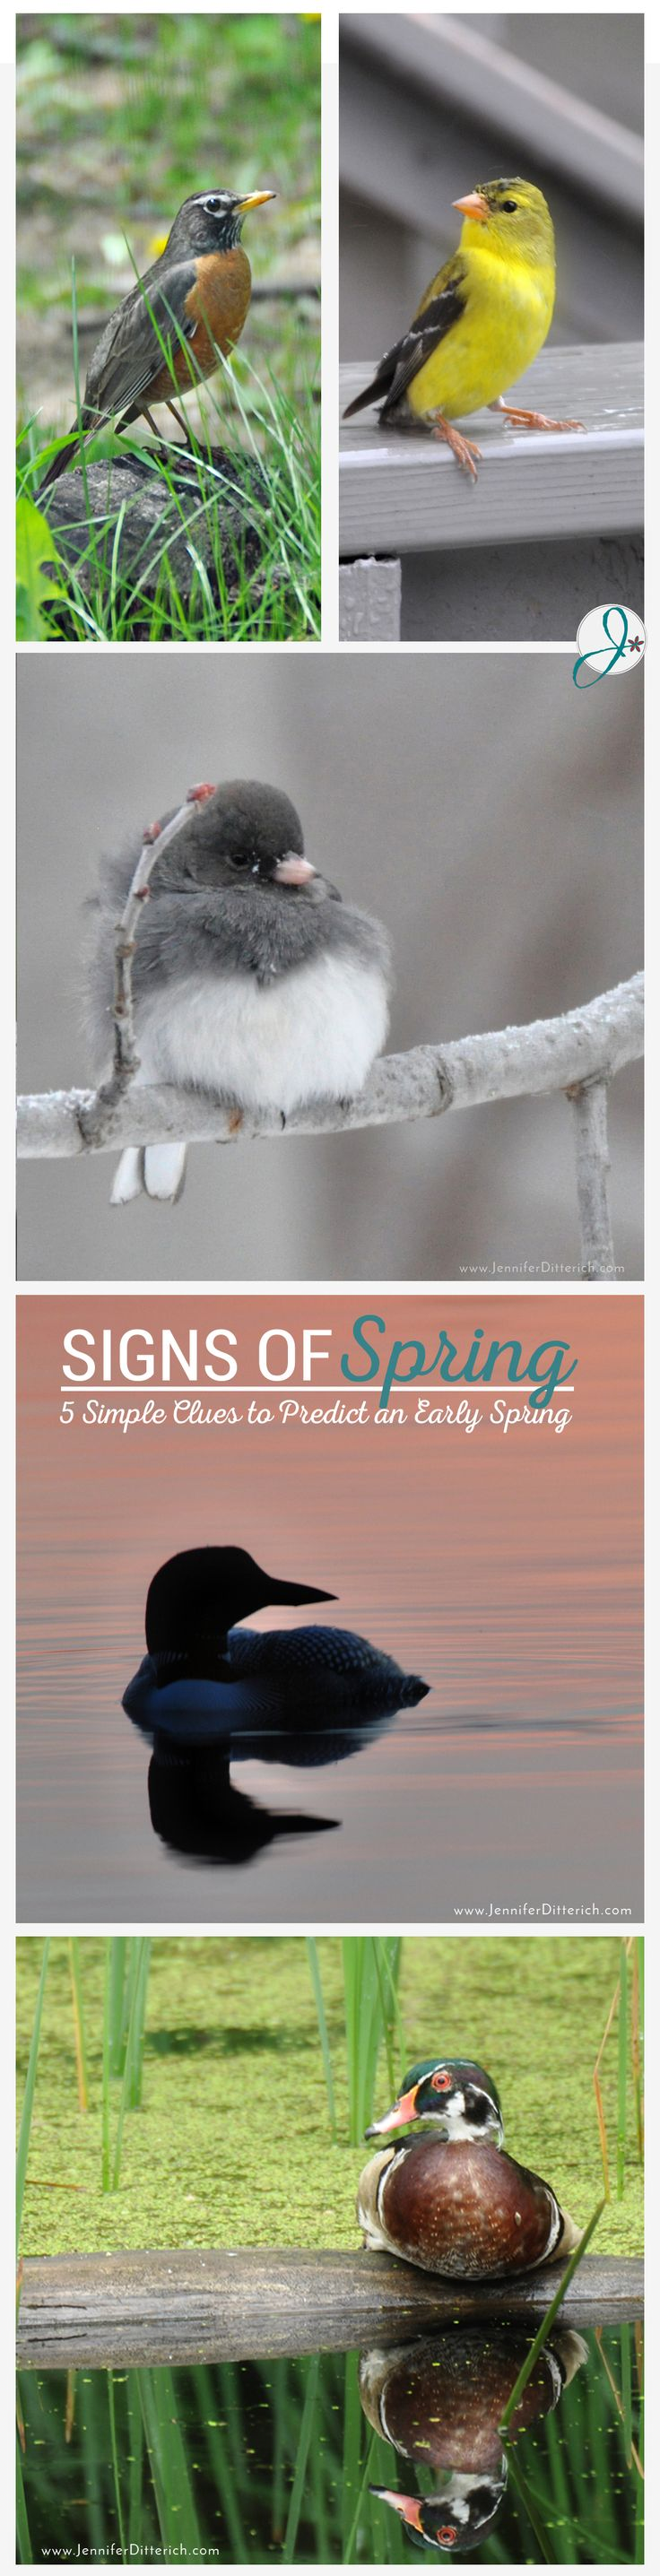 Signs of Spring | Read nature's clues to see if spring is arriving early this year.